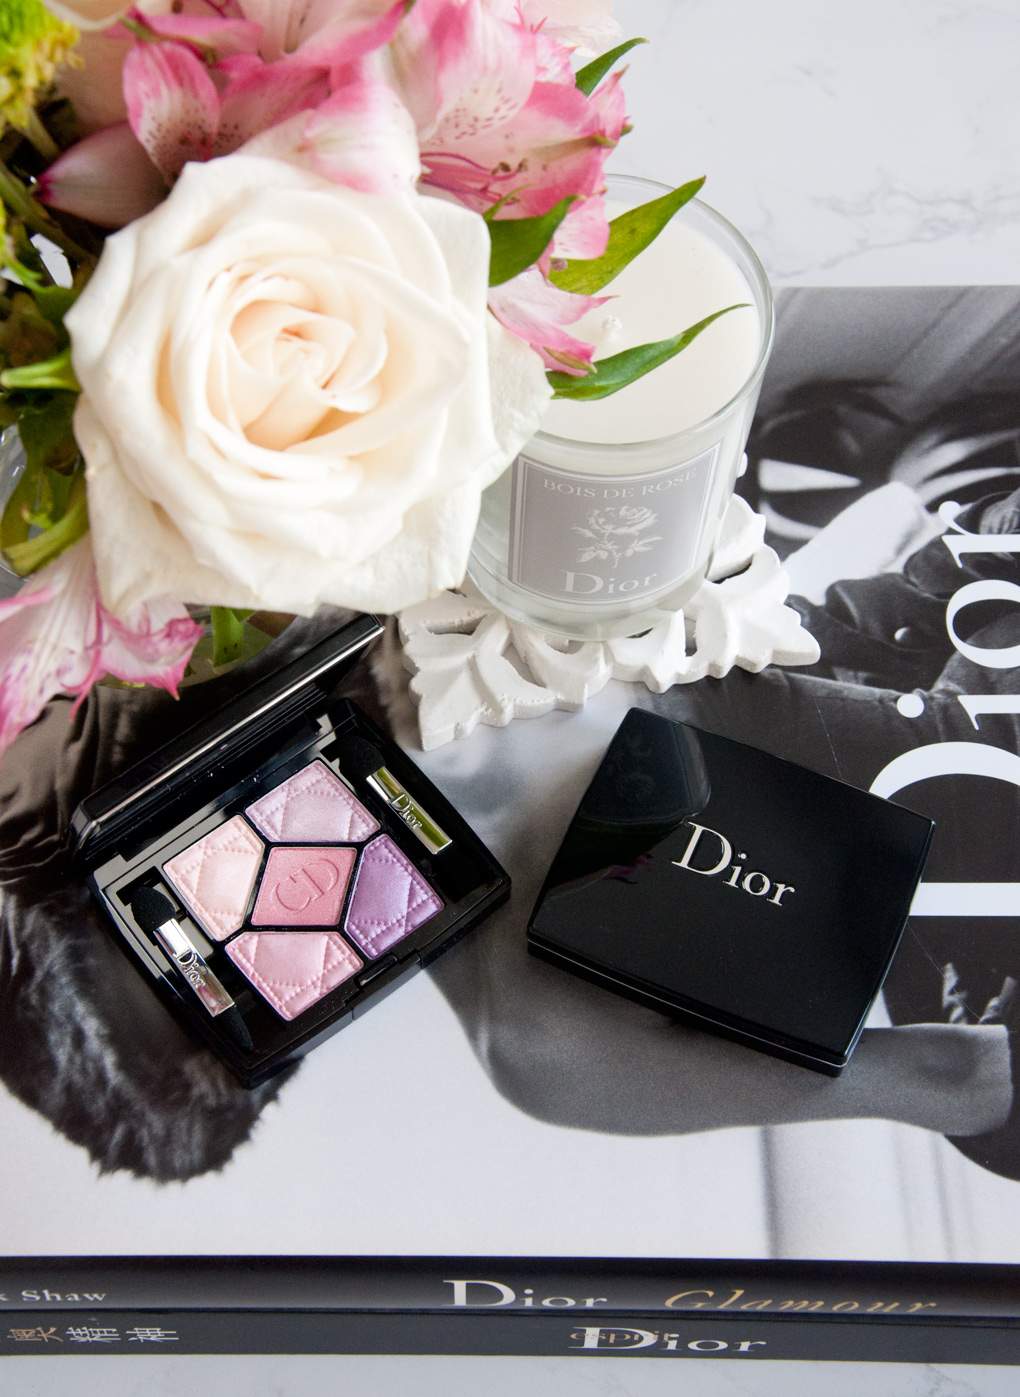 Lyla_Loves_Fashion_Christian_Dior_Makeup_Review_lipstick_Eyeshadow_0423